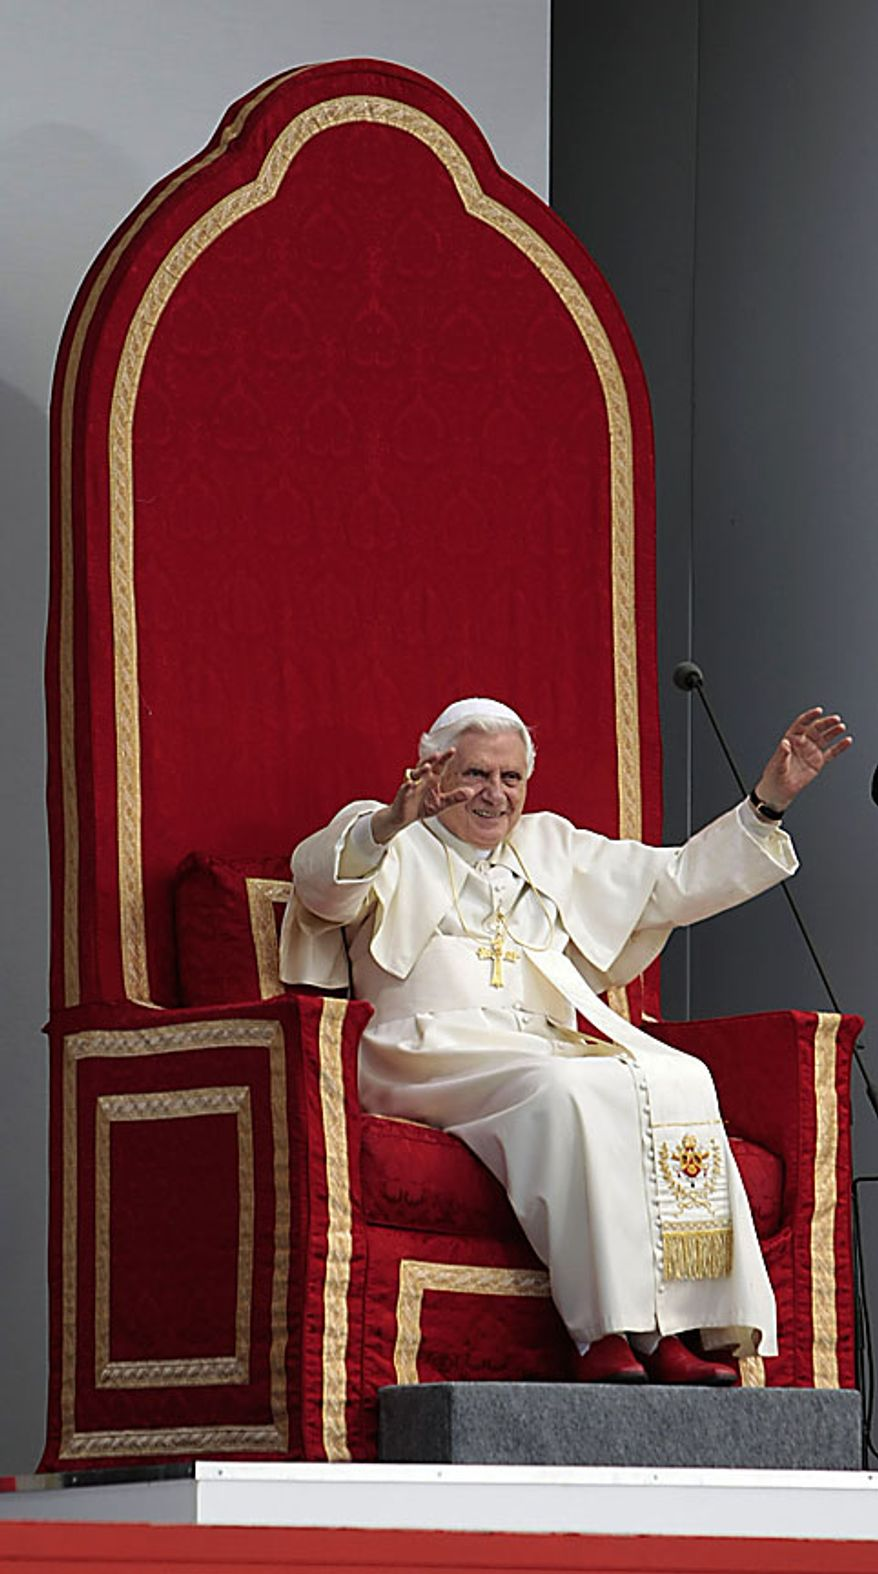 Pope Benedict XVI greets faithful during his visit at St. Mary University college in London, Friday, Sept. 17, 2010. (AP Photo/Gregorio Borgia)